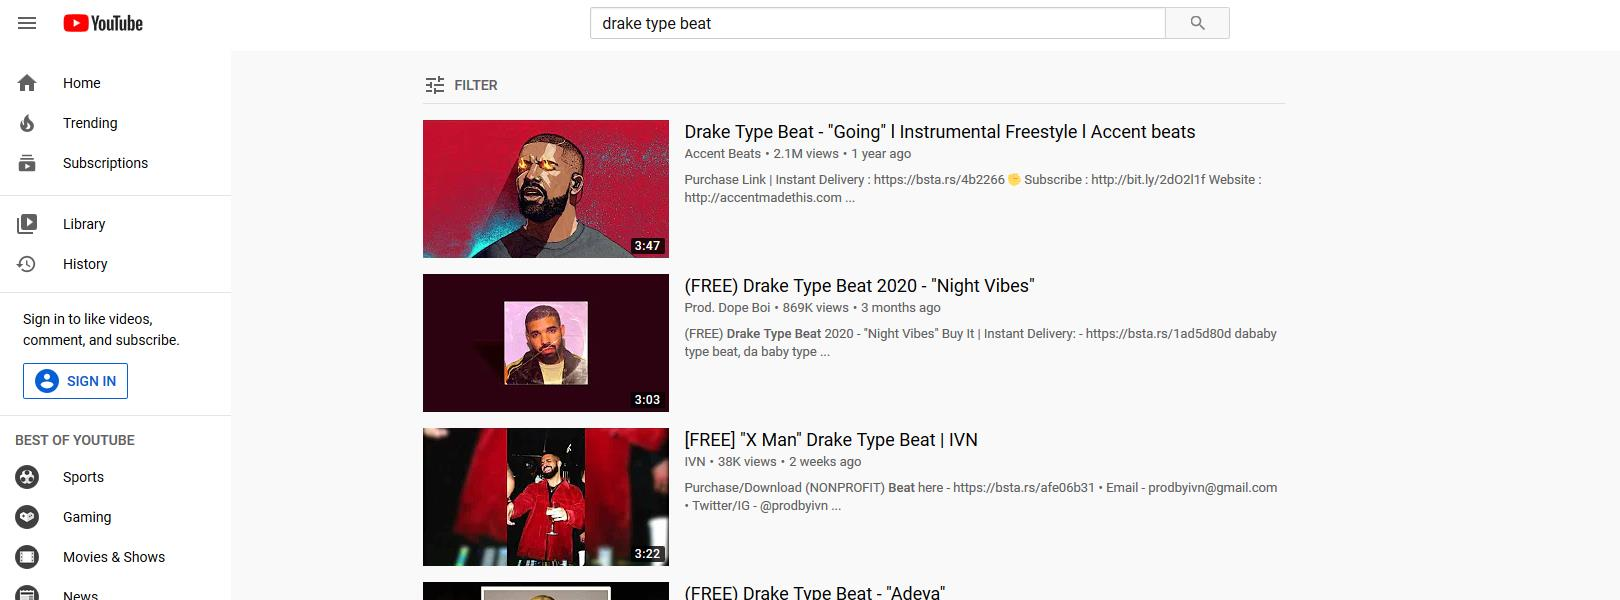 drake type beats on youtube